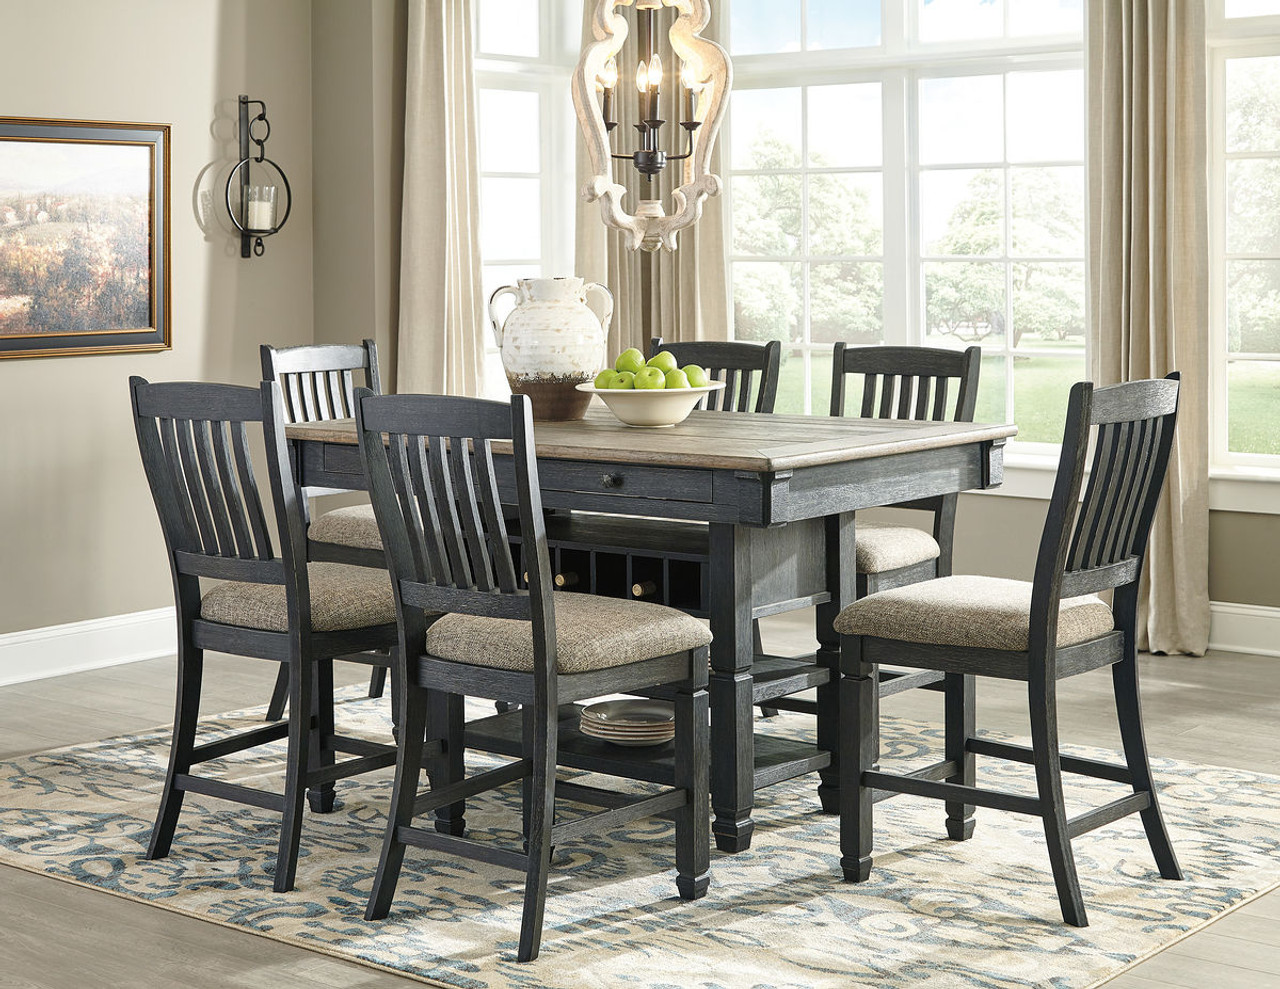 The Tyler Creek Black/Gray Rectangular Dining Room Counter Table ...